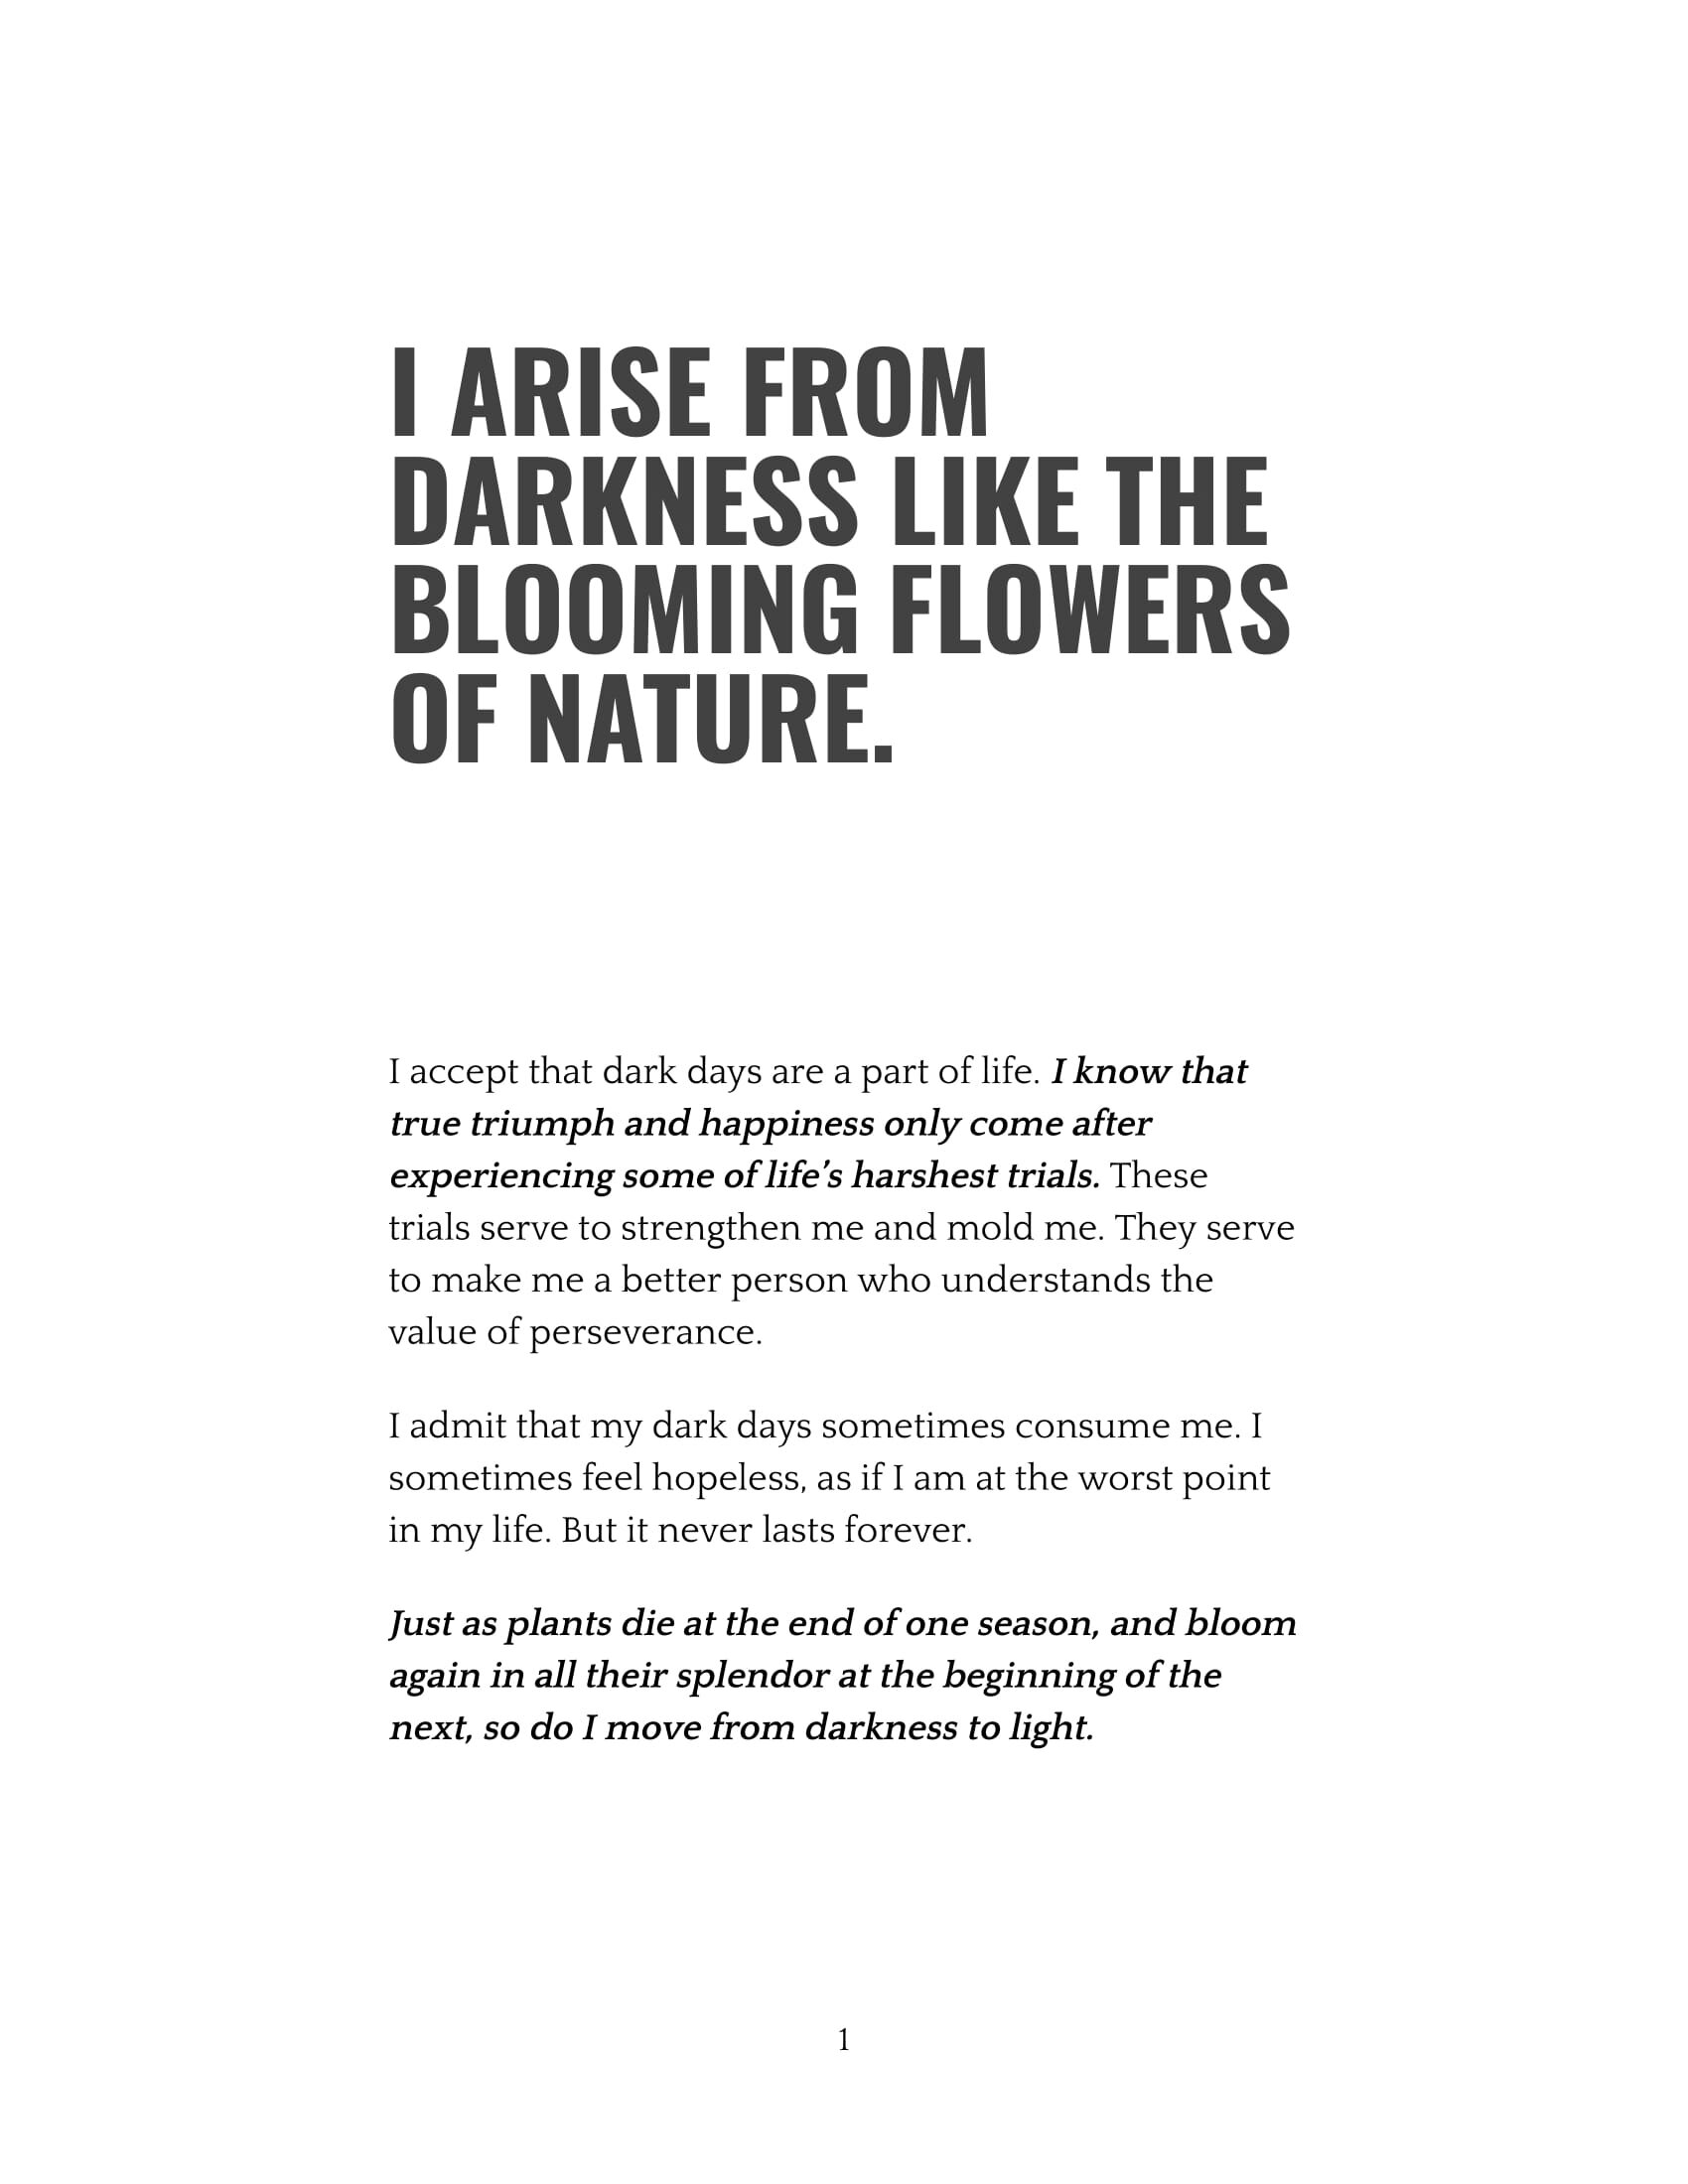 I Arise From Darkness Like The Blooming Flowers Of Nature-1.jpg